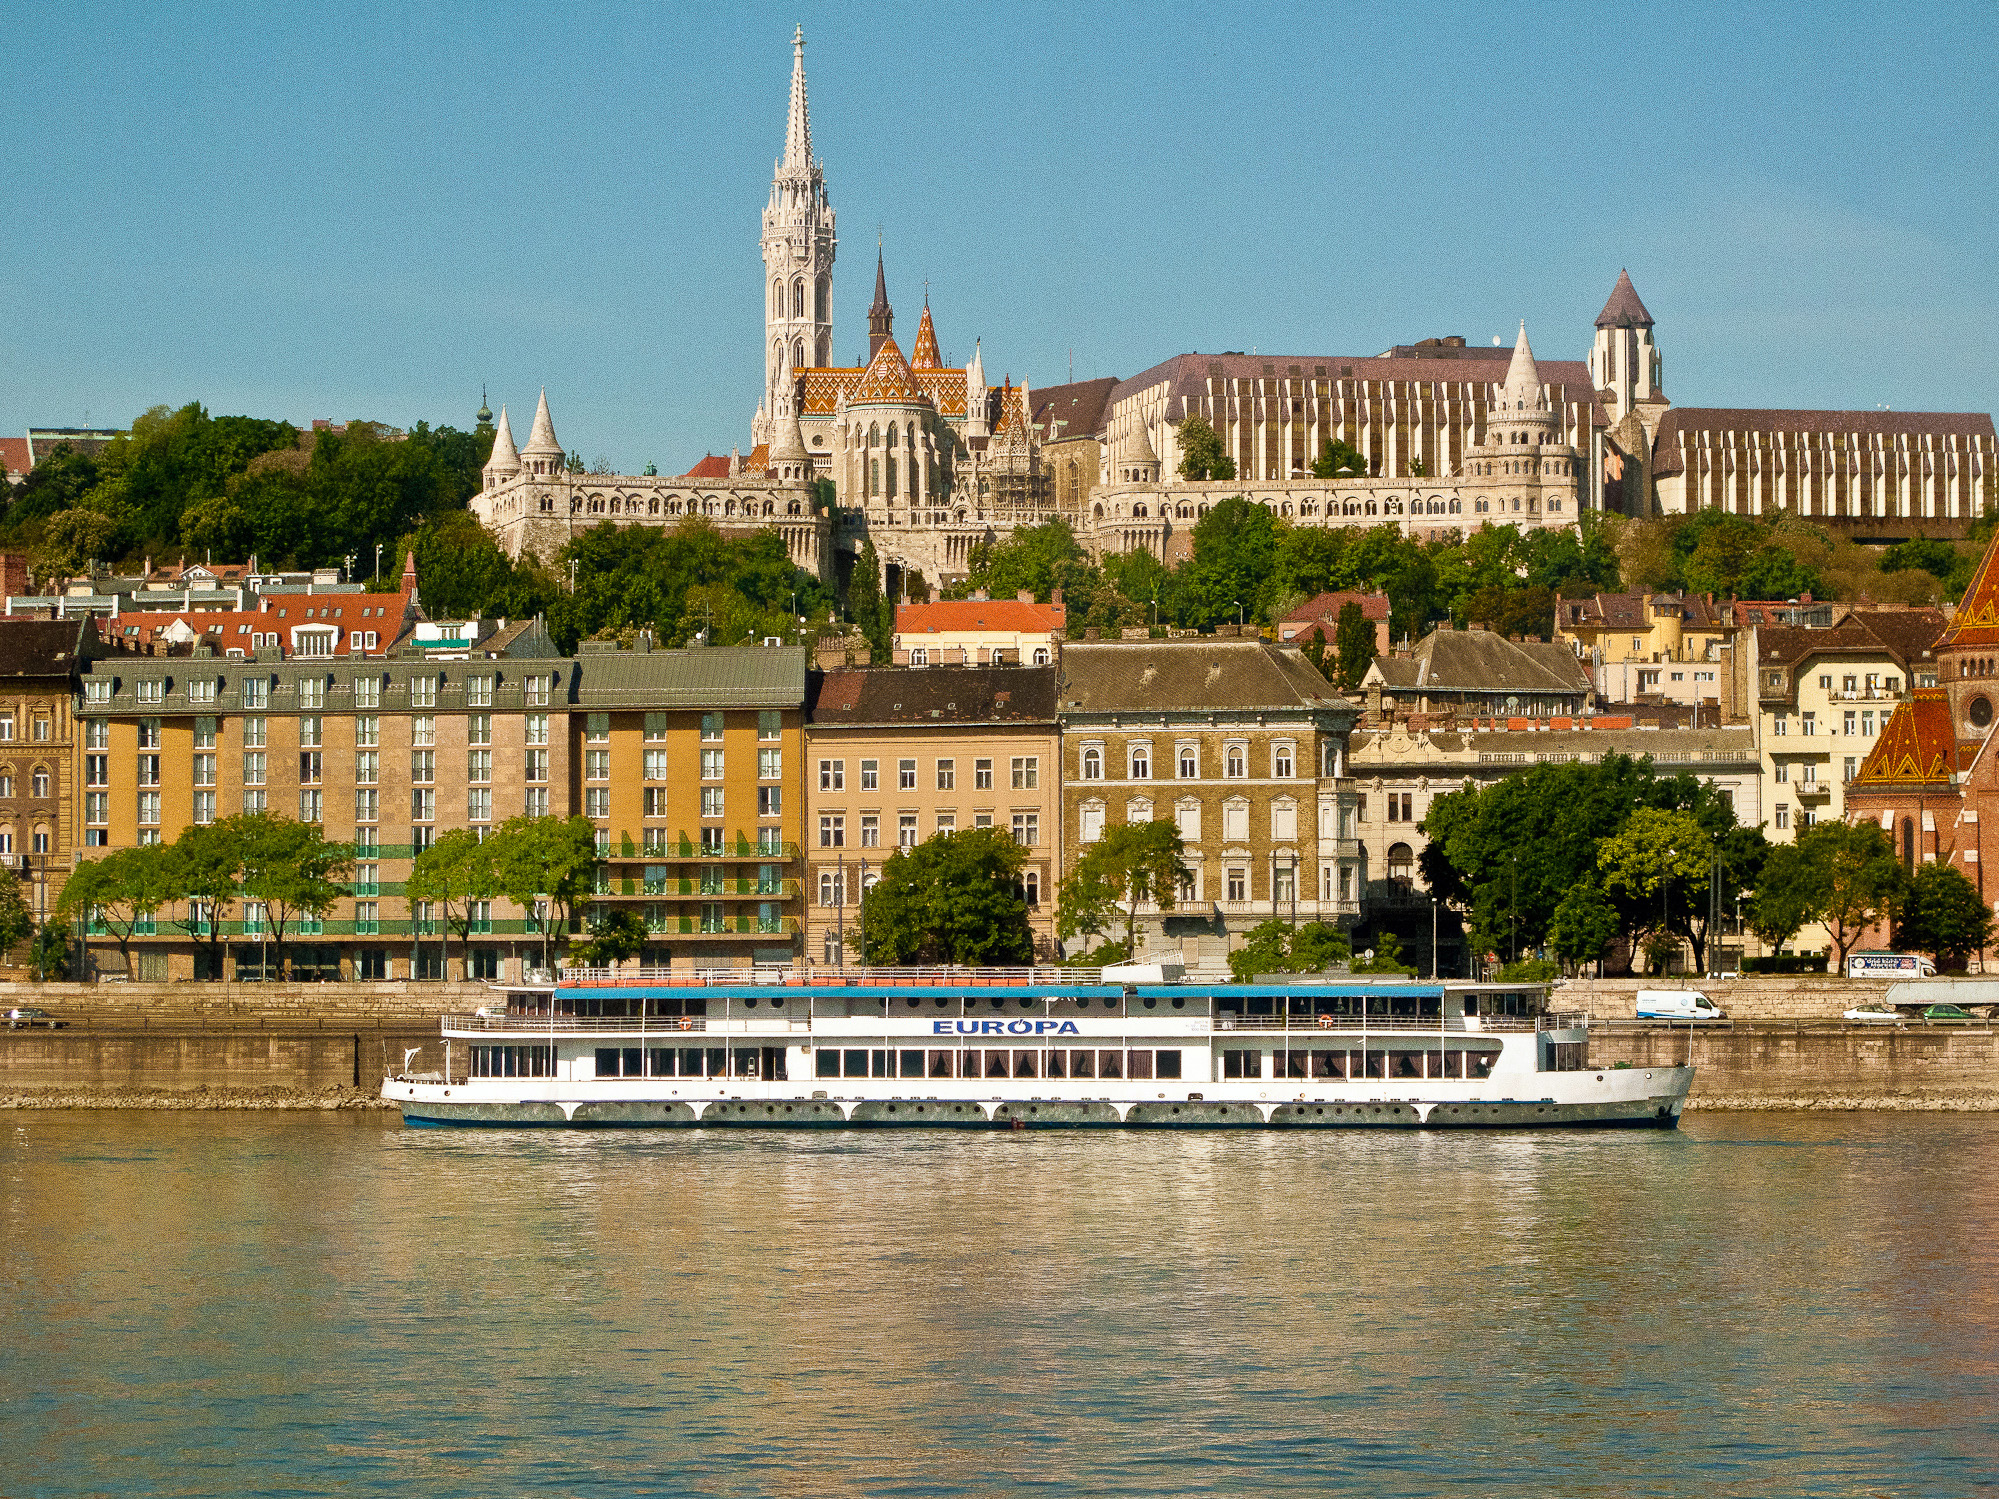 Summer River Cruises in Europe May Now Present Problems, Says Arthur Frommer | Frommer's